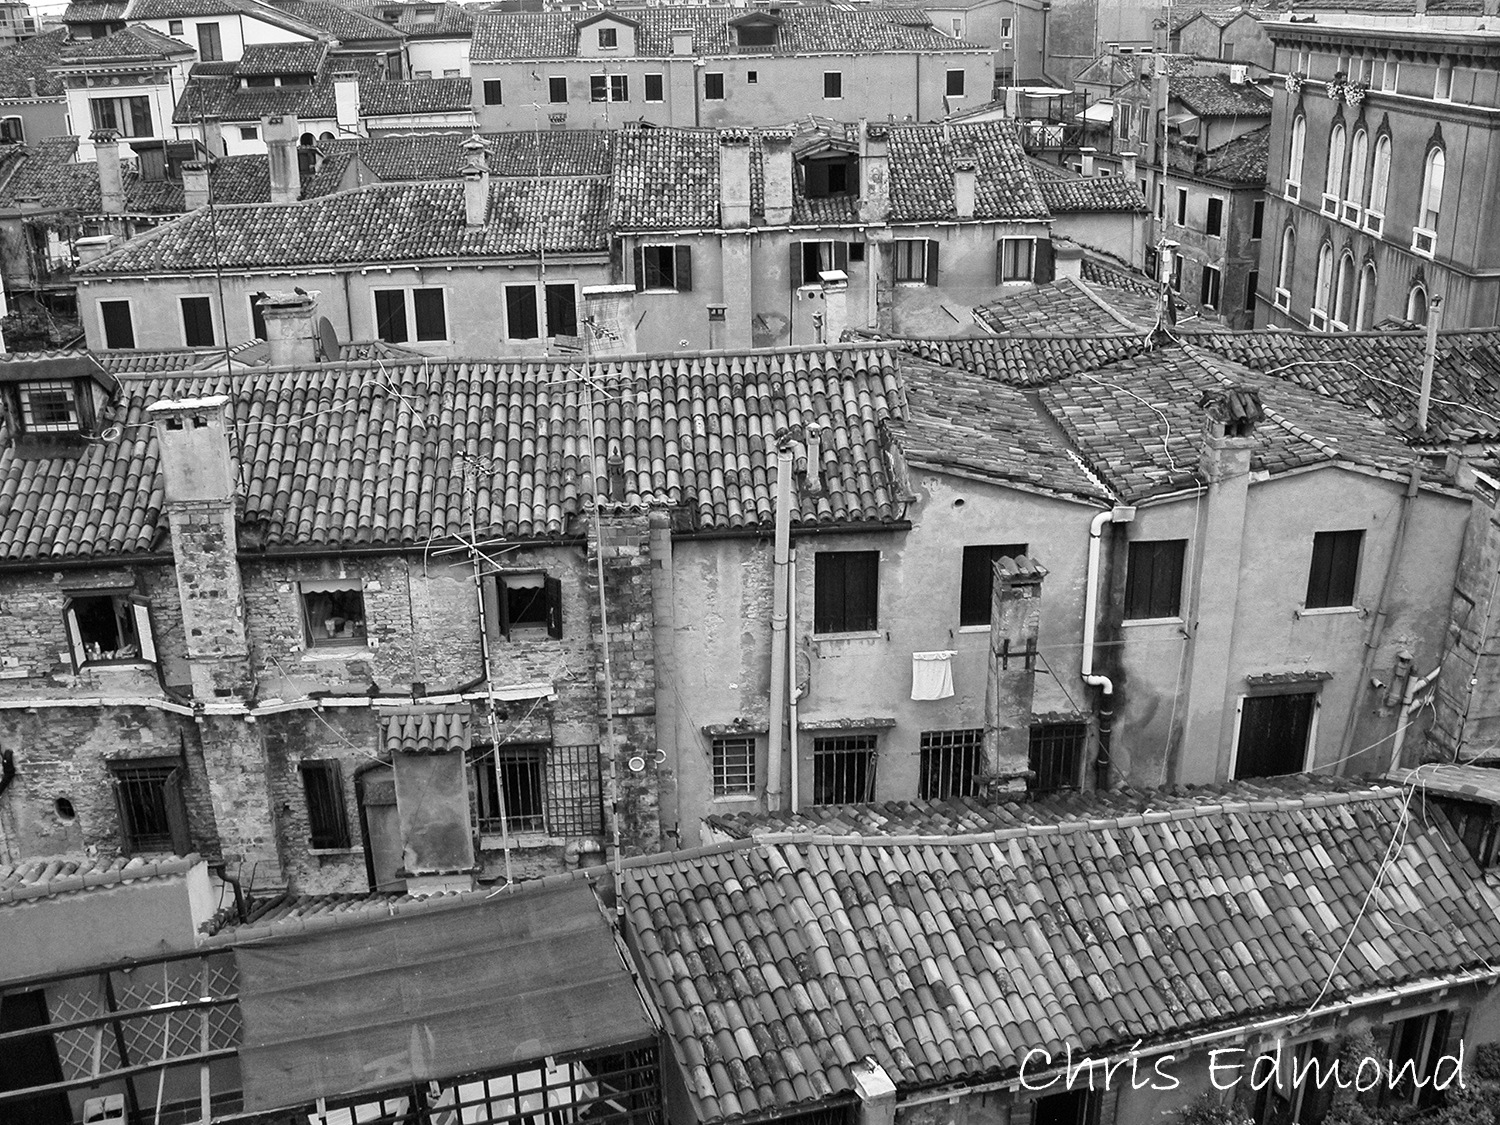 The old 500 year old buildings fof Venice Italy by cedmond